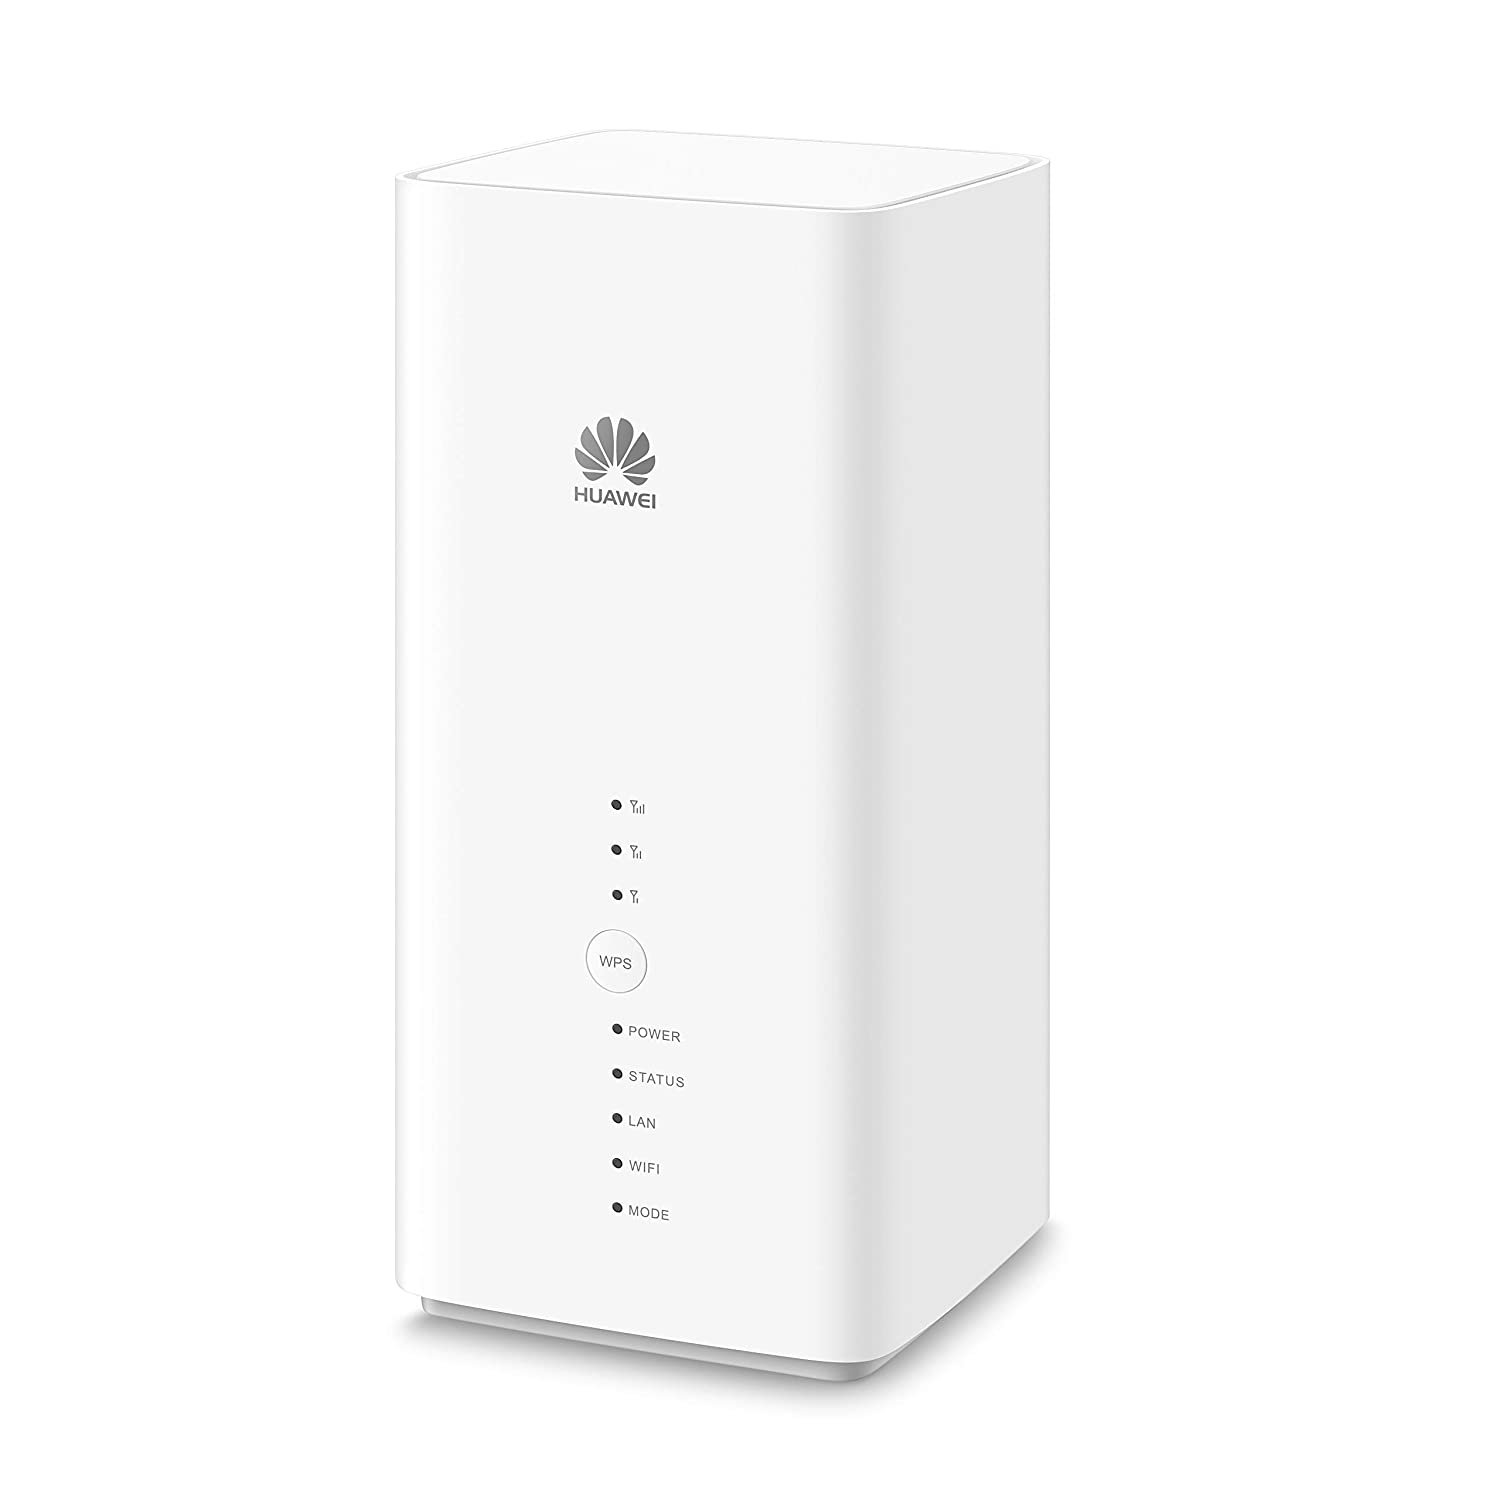 Huawei B618 Unlocked 4G/LTE 600 Mbps Mobile Wi-Fi Router B618s-65d